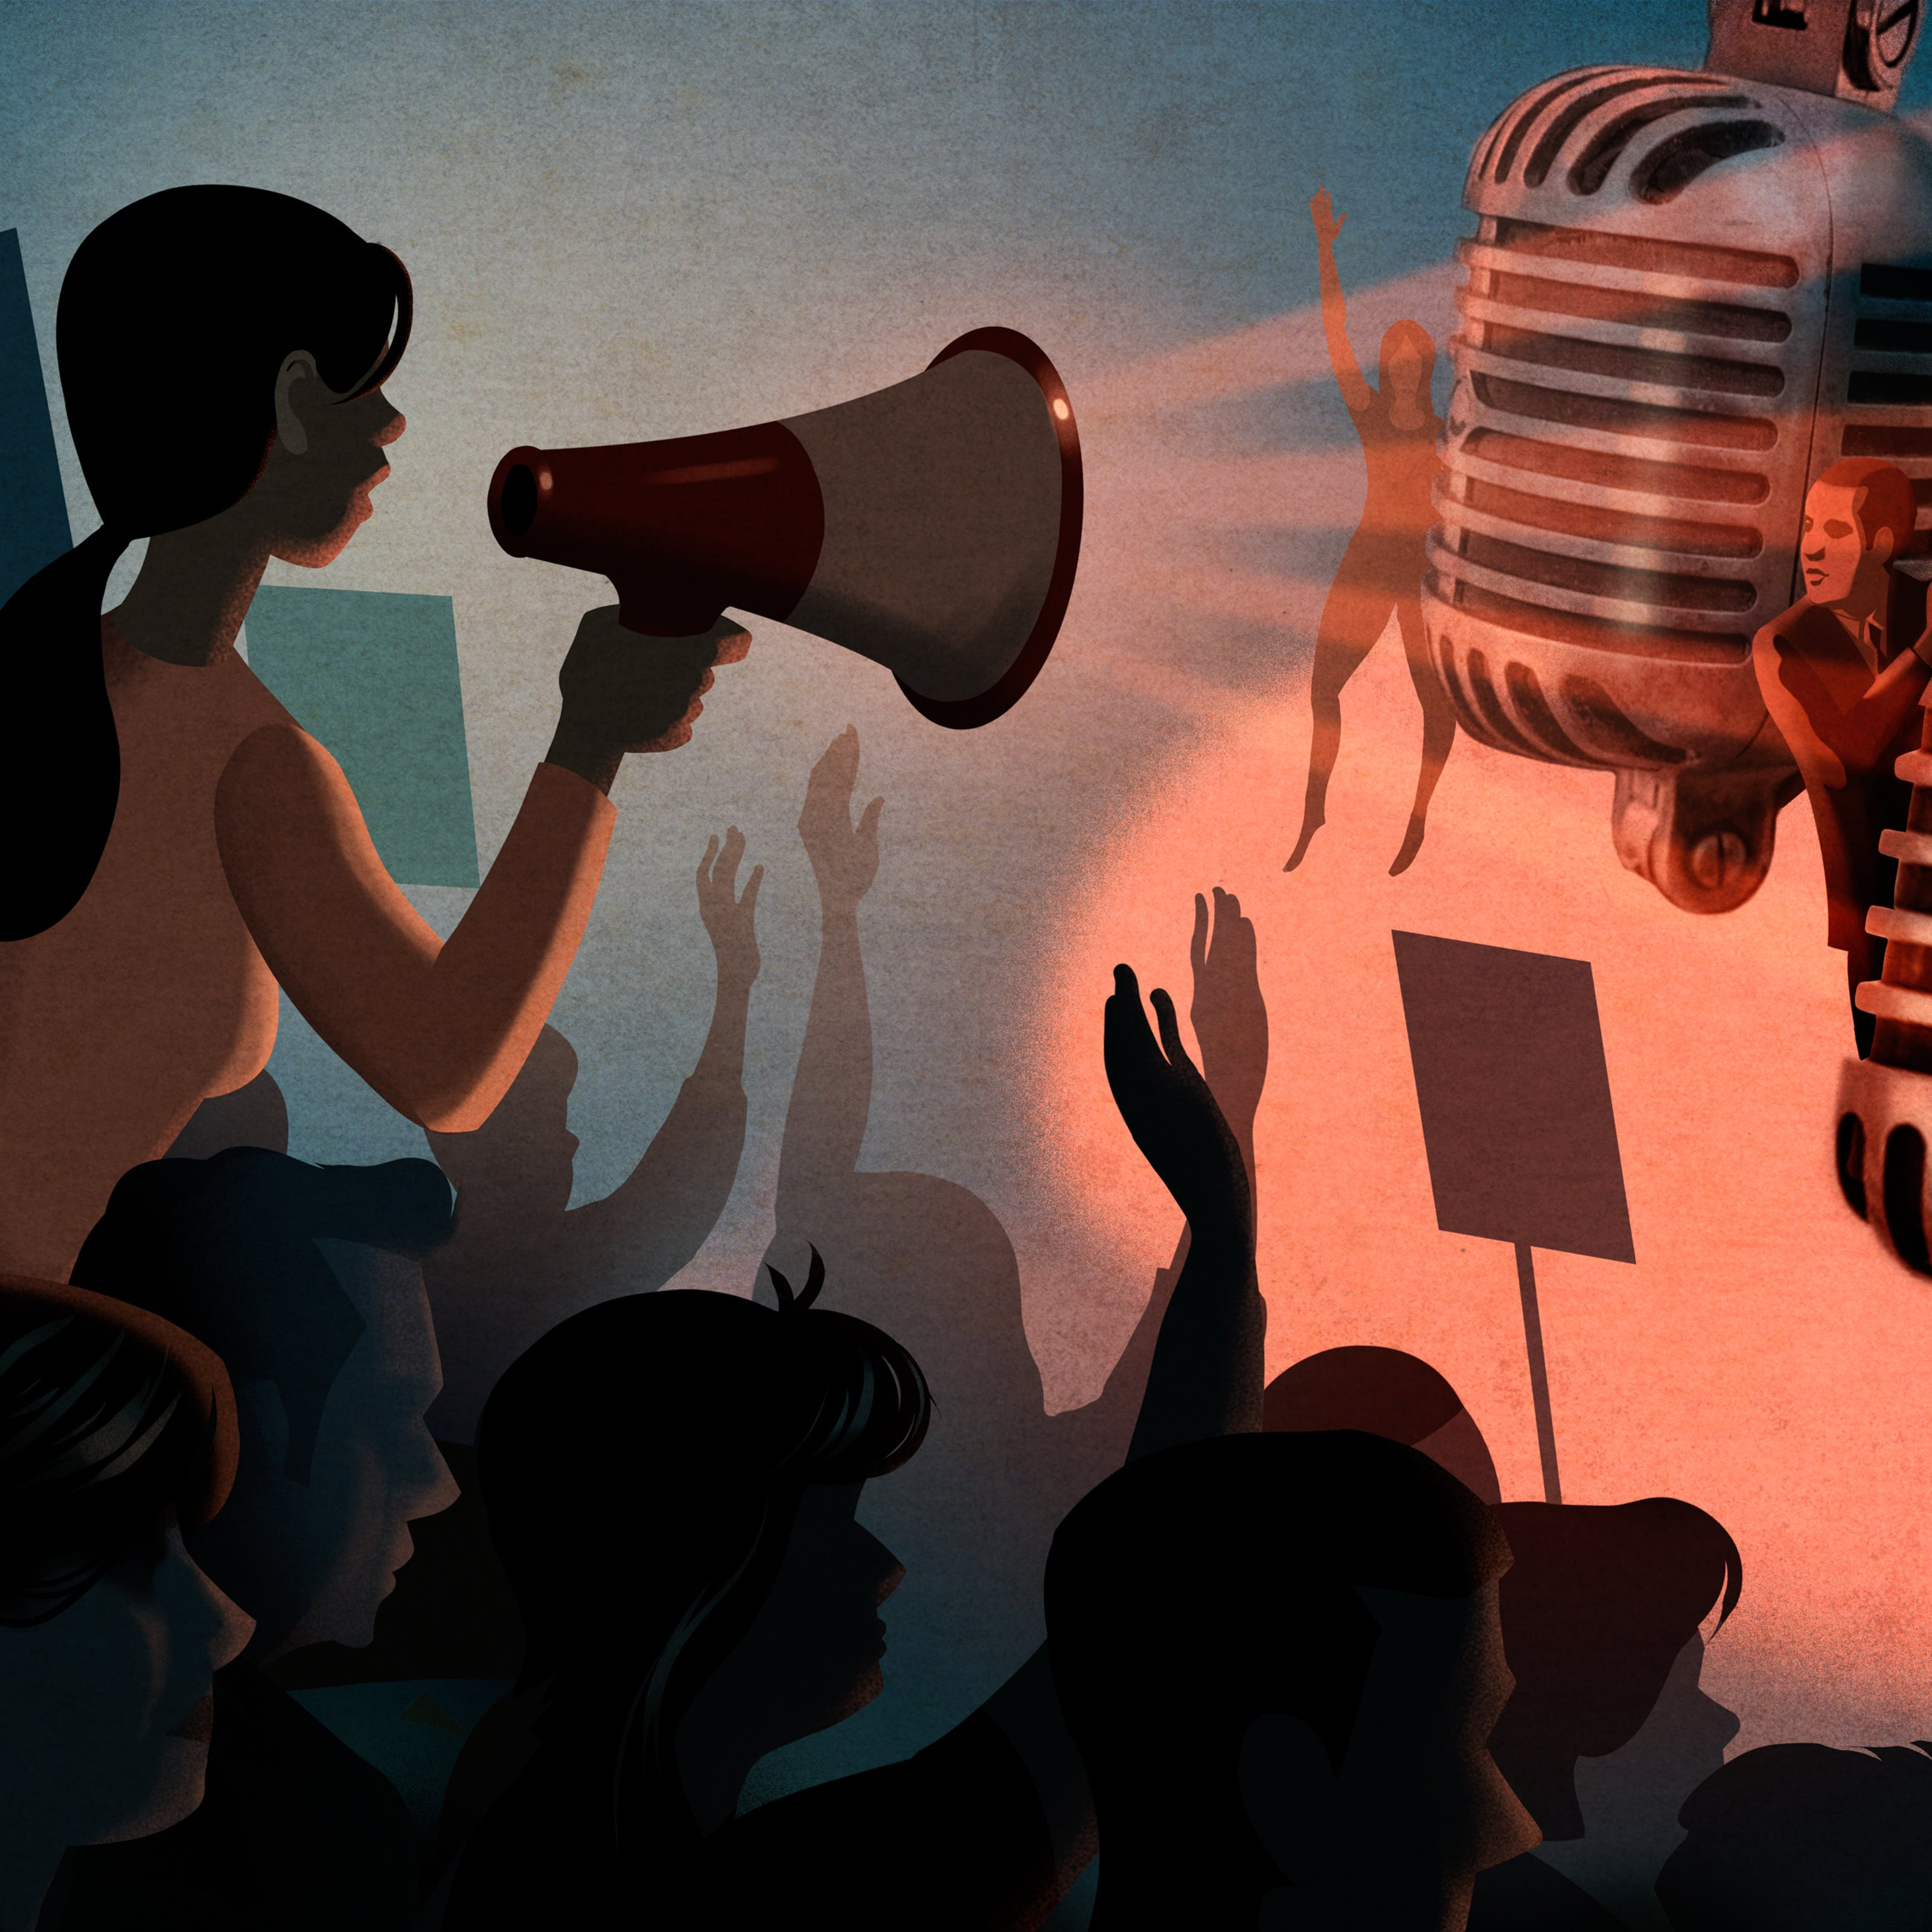 Illustration of a female figure on the left hand side who is rising up out of a larger crowd of people. She is holding a loudhailer to her mouth and speaking. The crowd are raising their hands in support, some hold placards. In front of the crowd are two over-scale broadcast microphones being held by 4 individuals pushing them slightly towards the crowd. The hues of the illustration are muted reds, blues and whites.